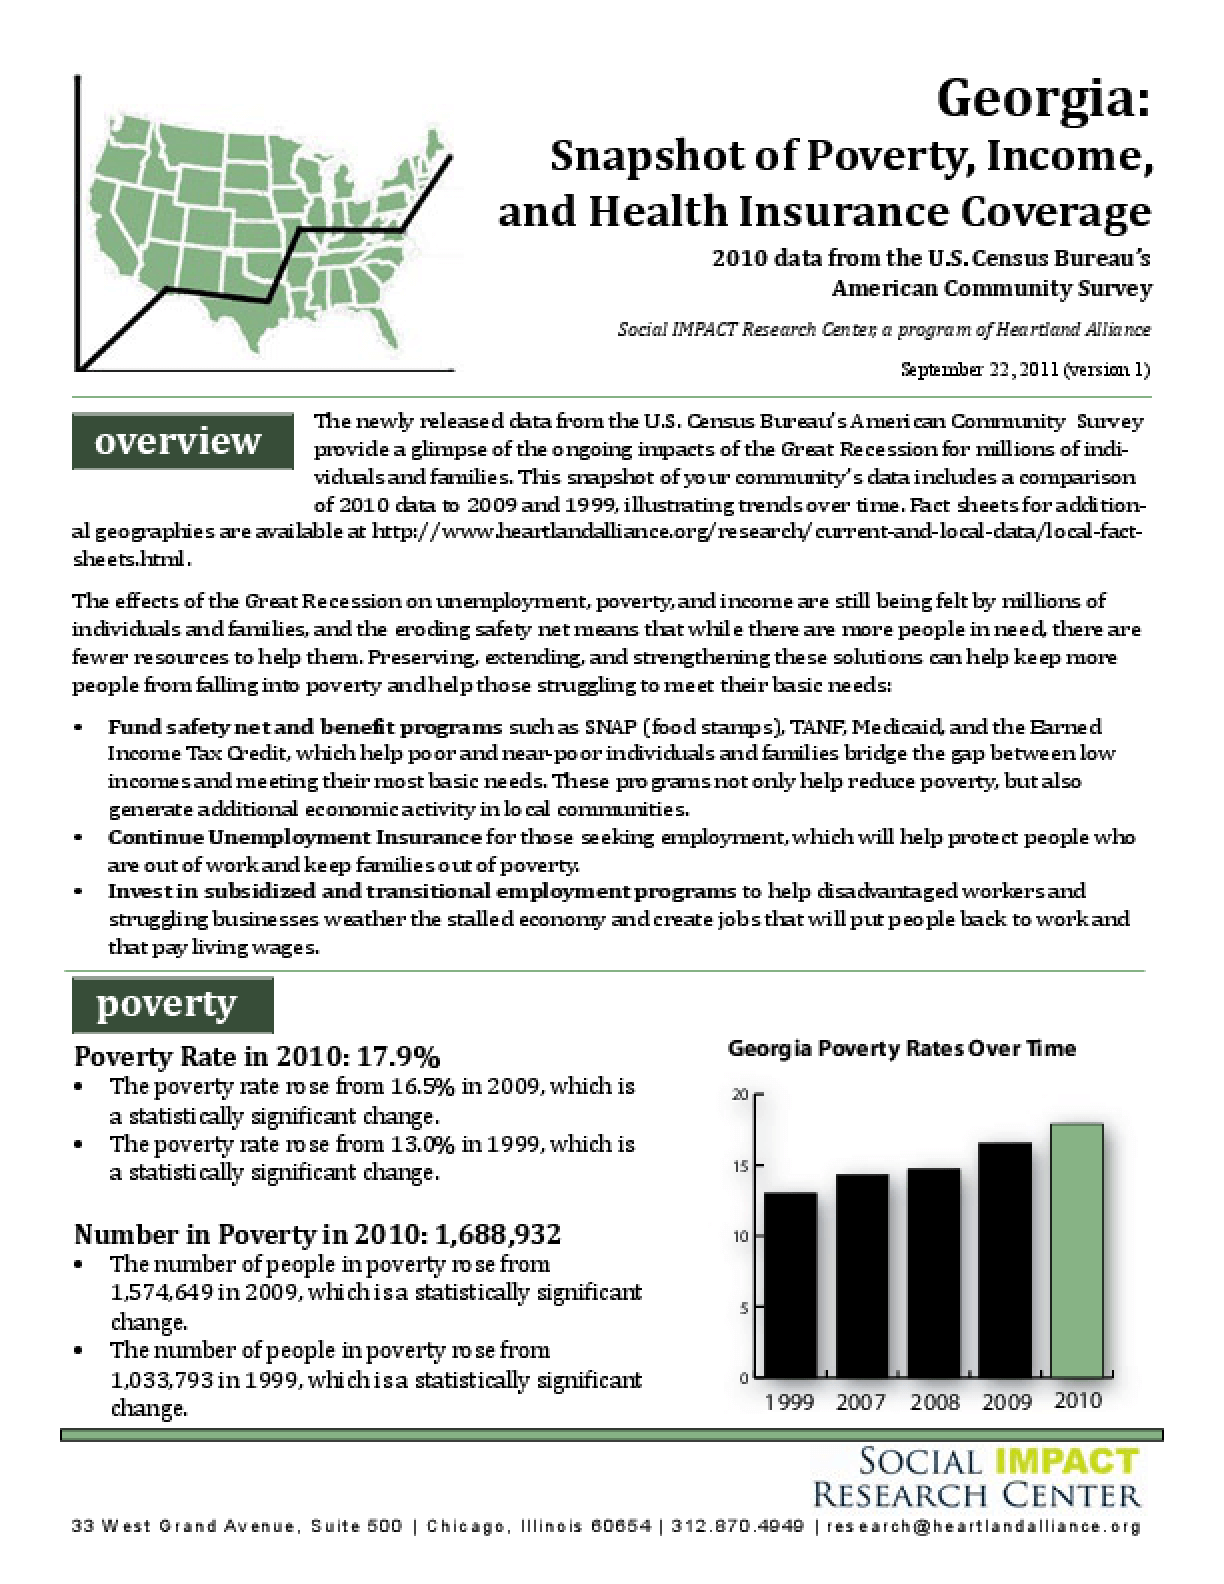 Georgia: Snapshot of Poverty, Income, and Health Insurance Coverage